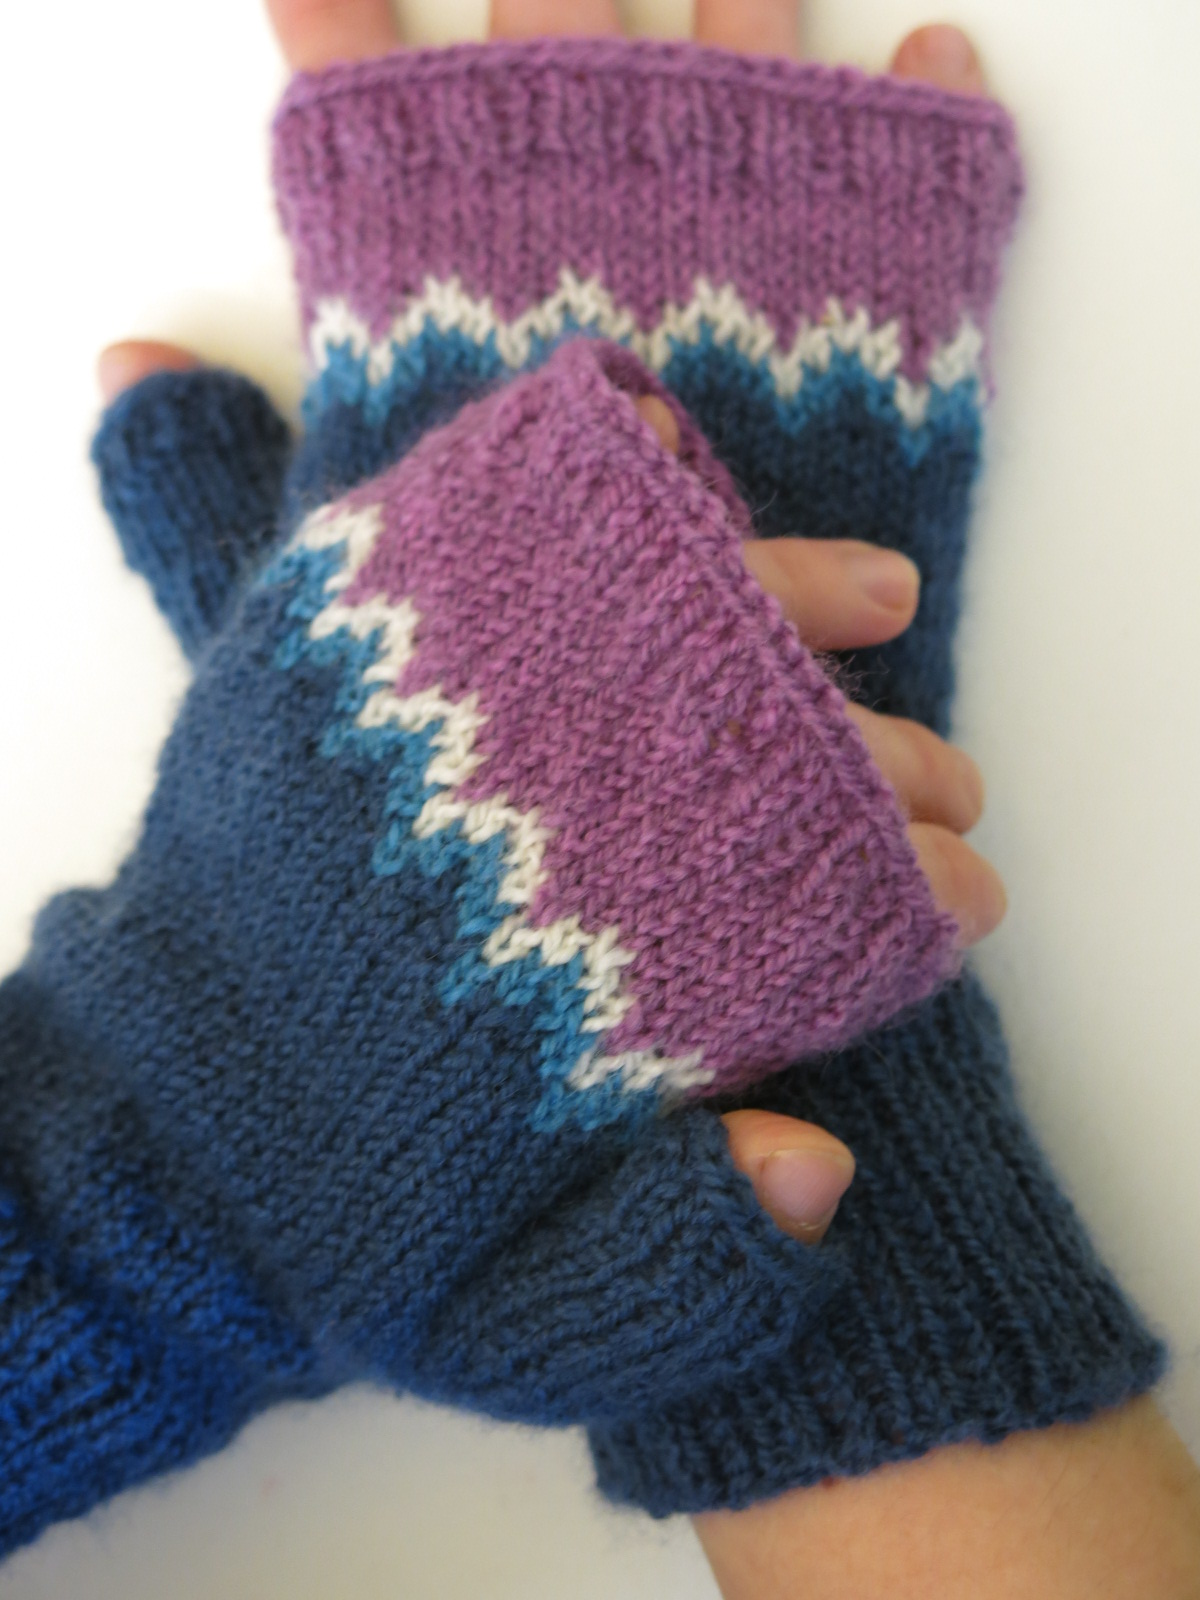 colourwork colorwork mitts mittens gloves knitting pattern